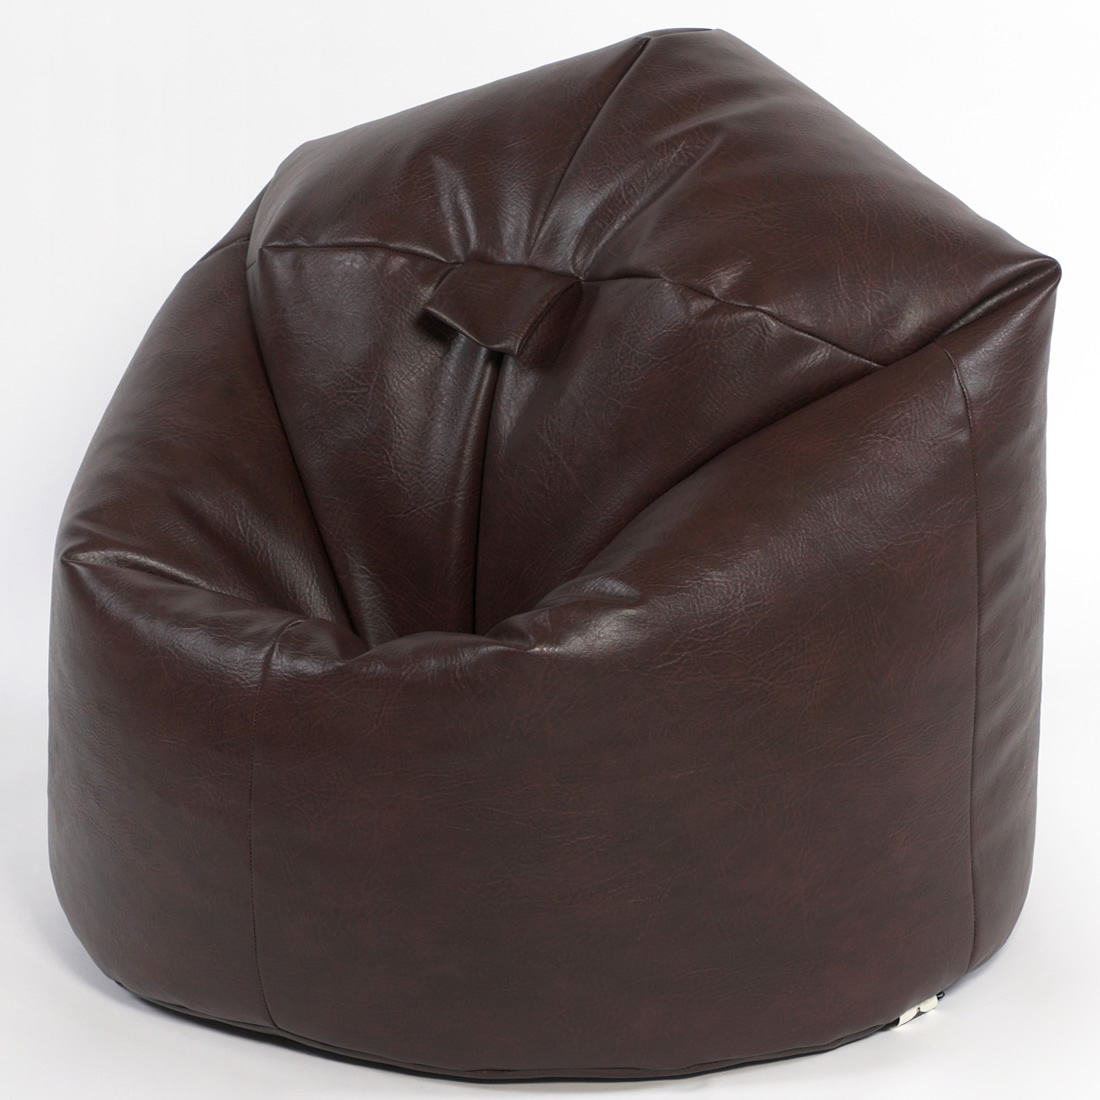 xl bean bag chairs x rocker gaming chair power adapter adult classic faux leather beanbag